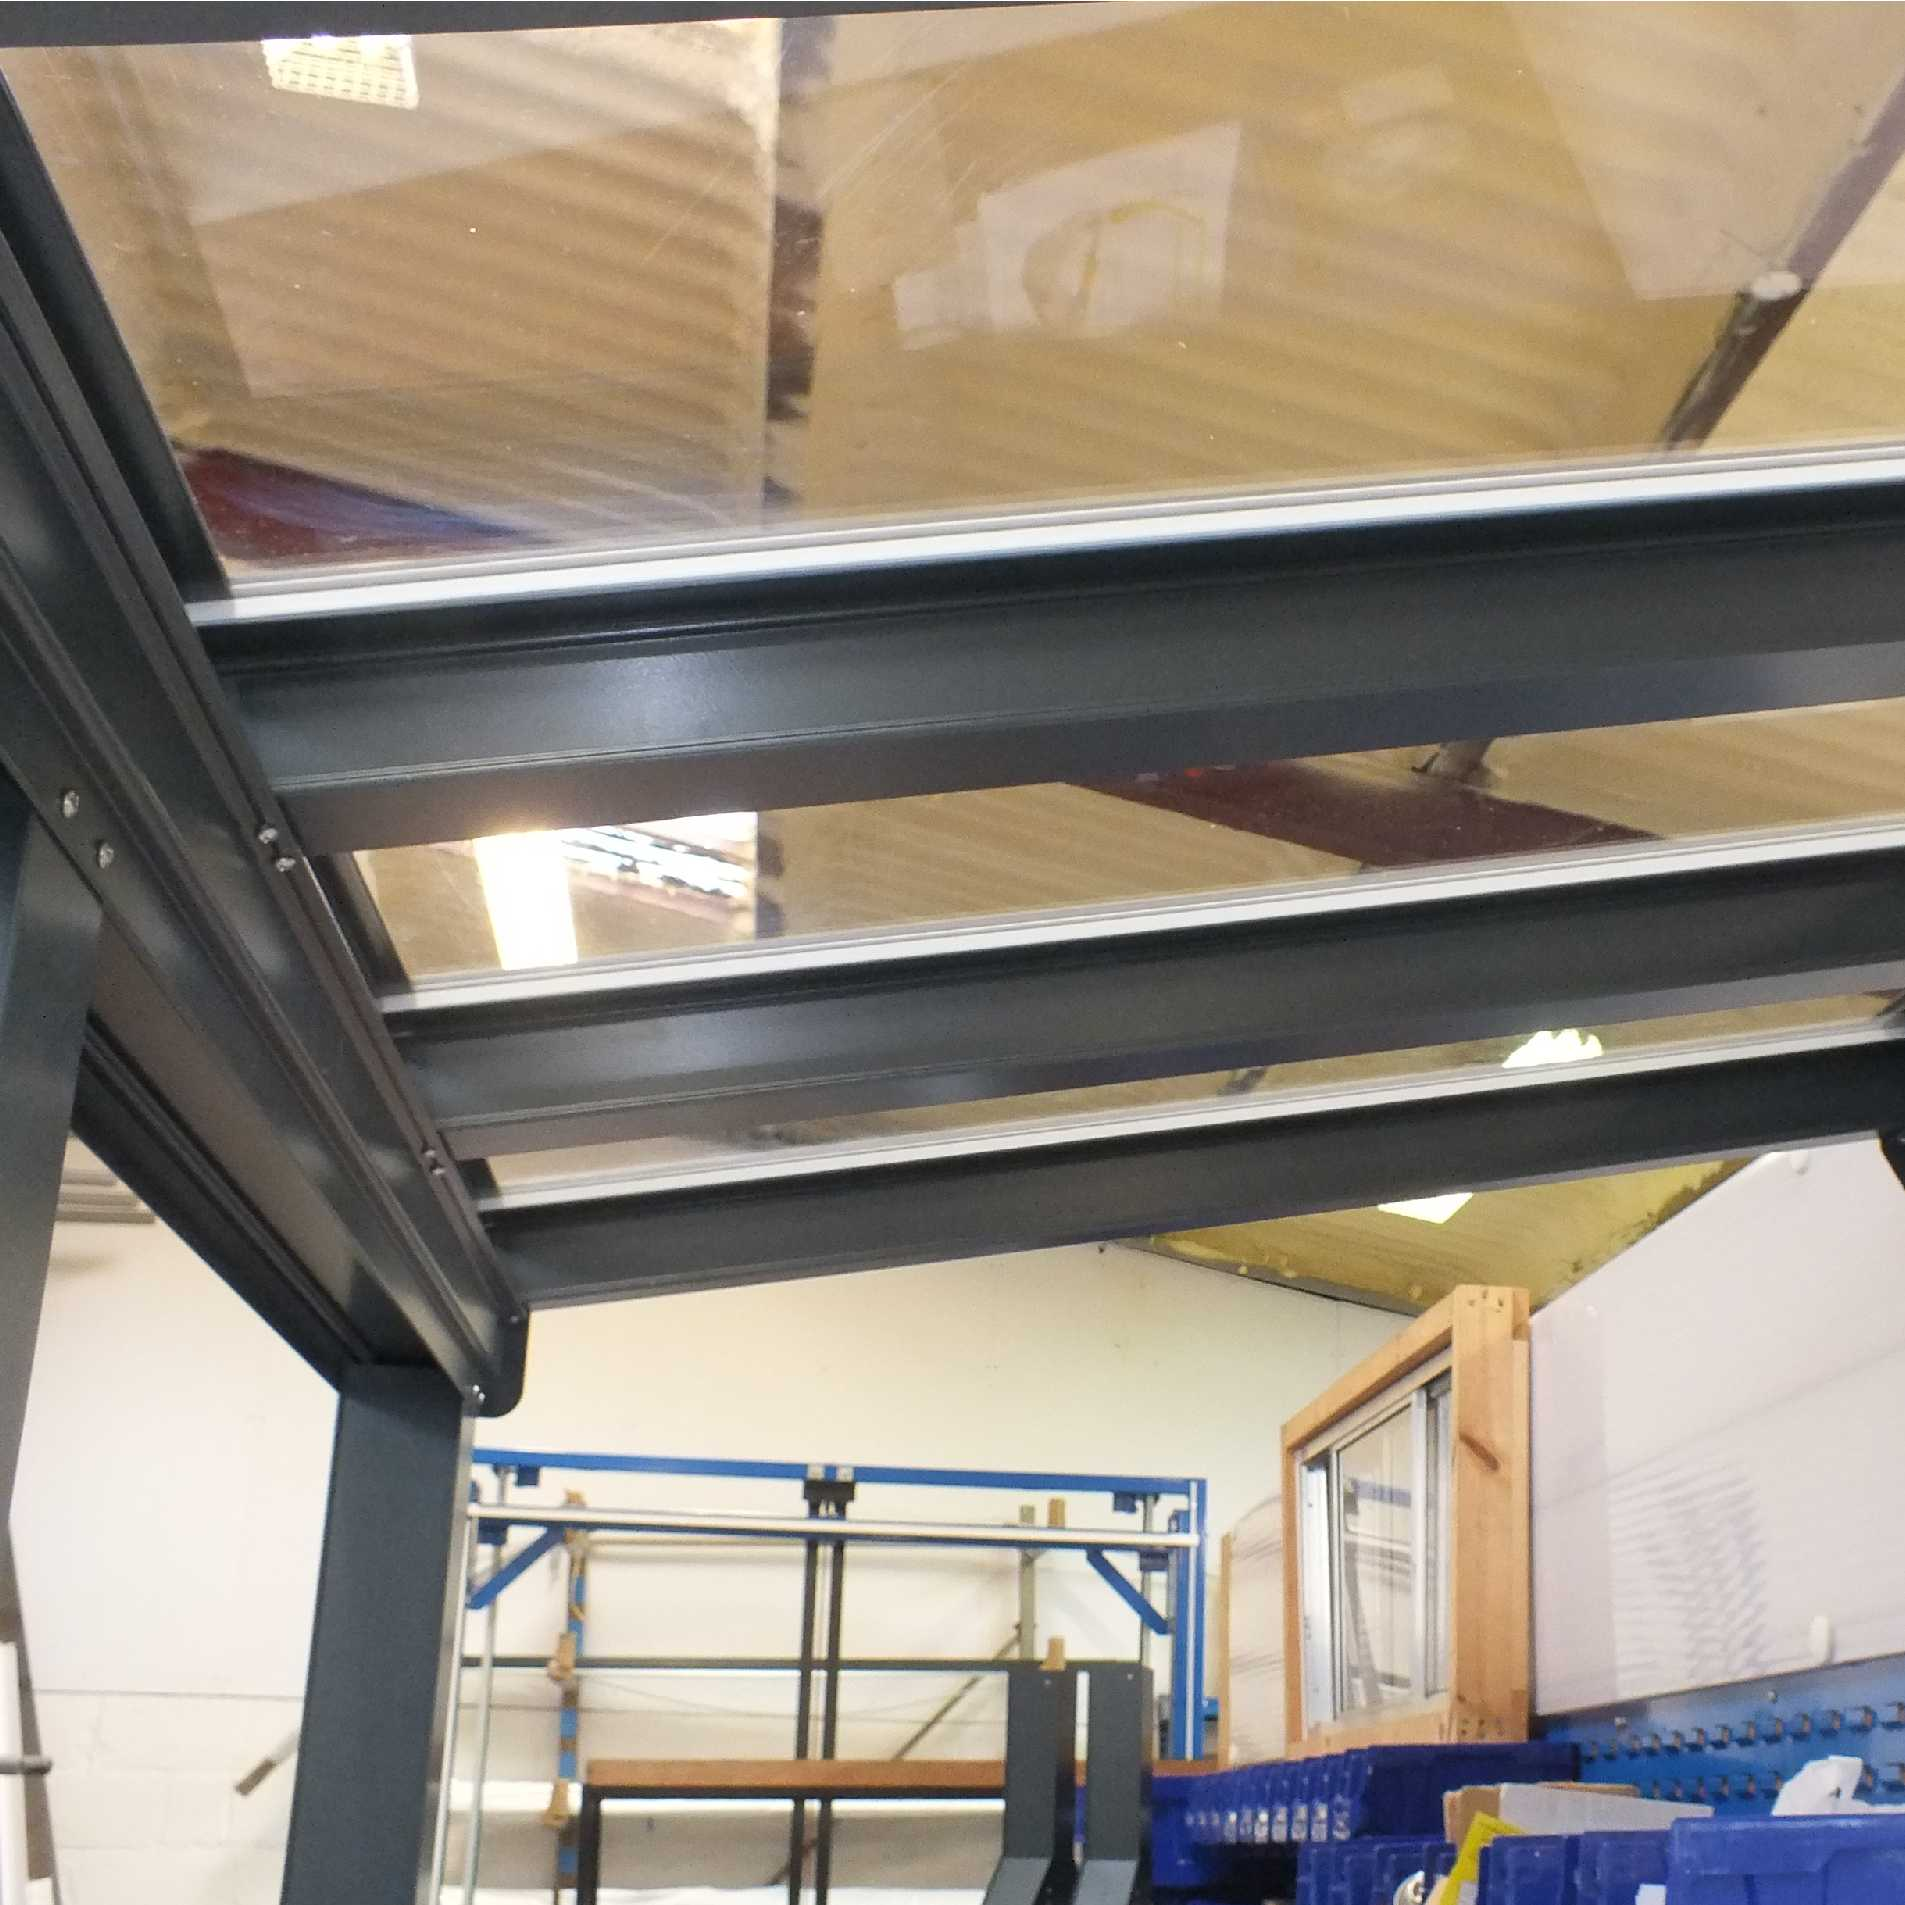 Great deals on Omega Smart Lean-To Canopy, Anthracite Grey, 6mm Glass Clear Plate Polycarbonate Glazing - 7.7m (W) x 2.0m (P), (4) Supporting Posts